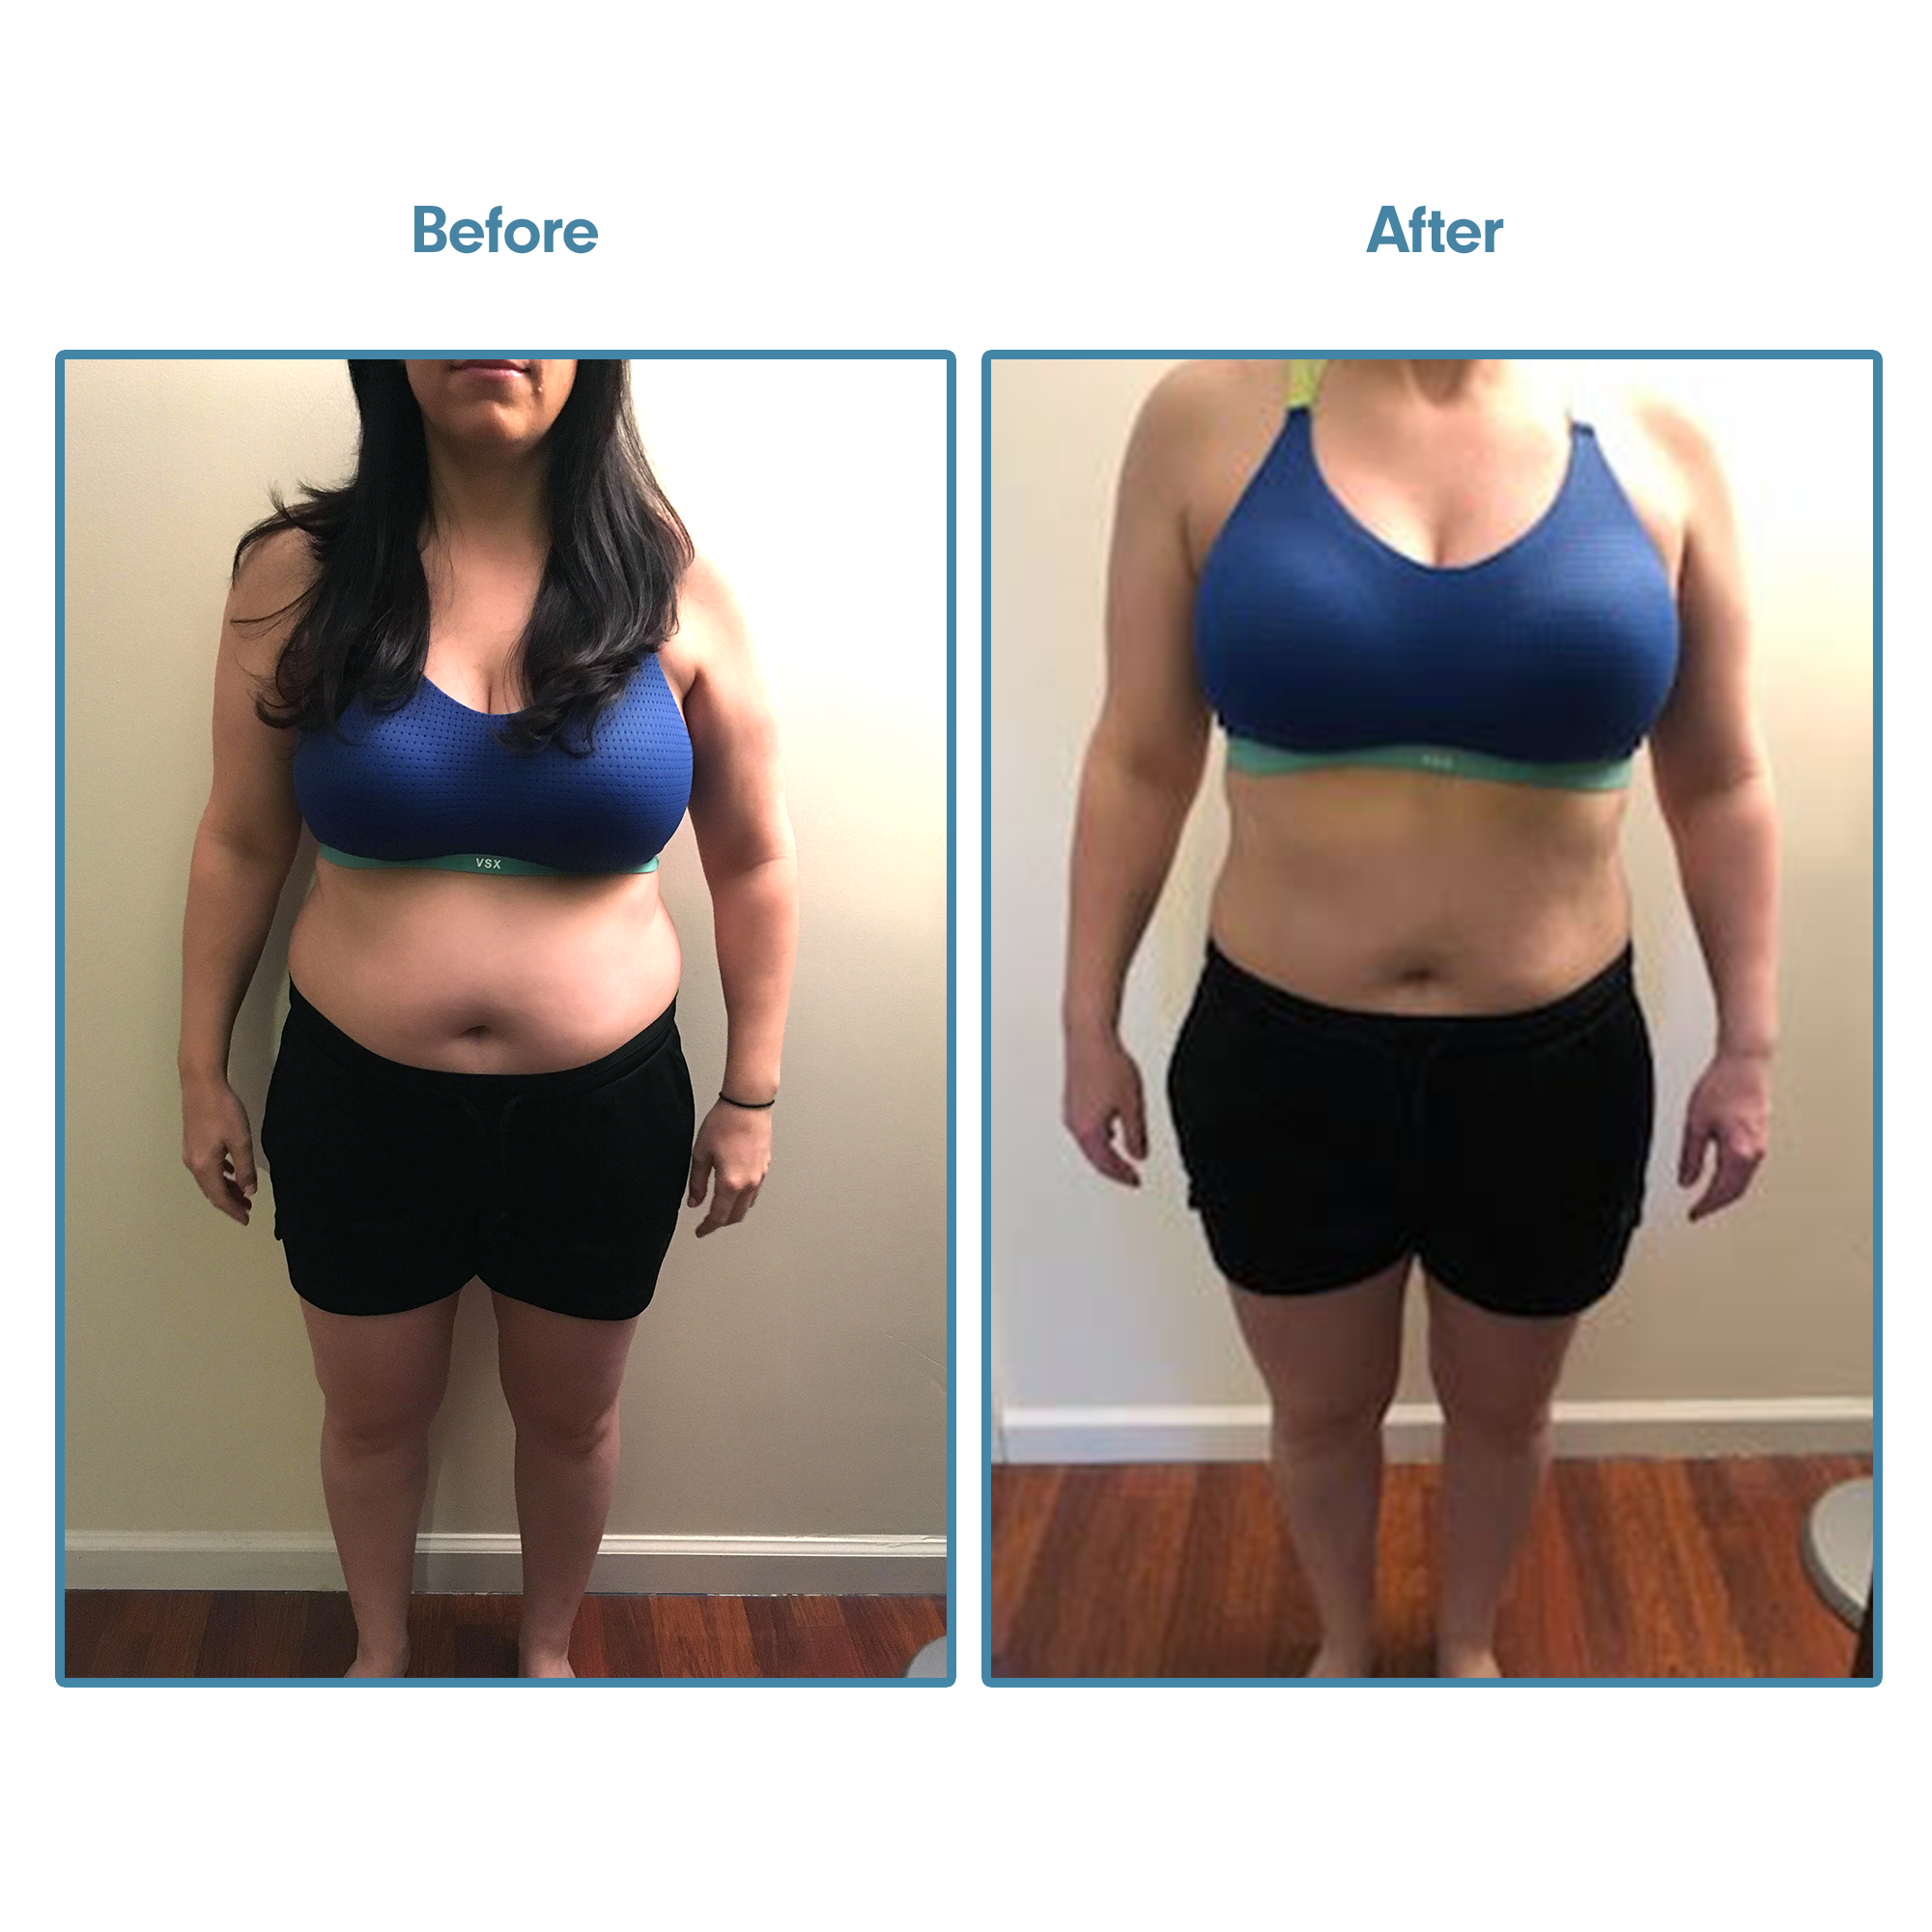 "Suzette - ""I'm so excited to see my transformation! It has been challenge with a busy work schedule and limited time, but I'm learned to make time for myself and focus on creating a better vision of me . Plus, I have more energy and confidence that I somehow lost over the past several years.Overall, I've lost 2 inches in my waist and have more defined arms and thighs. I'm up to 35 push-ups in 1 minute (and some of them are not on my knees!).I know the program is done, but I plan to start another round of the program this week! Seeing what I can accomplish after the first round makes me wants to see what 24 weeks would look like."""